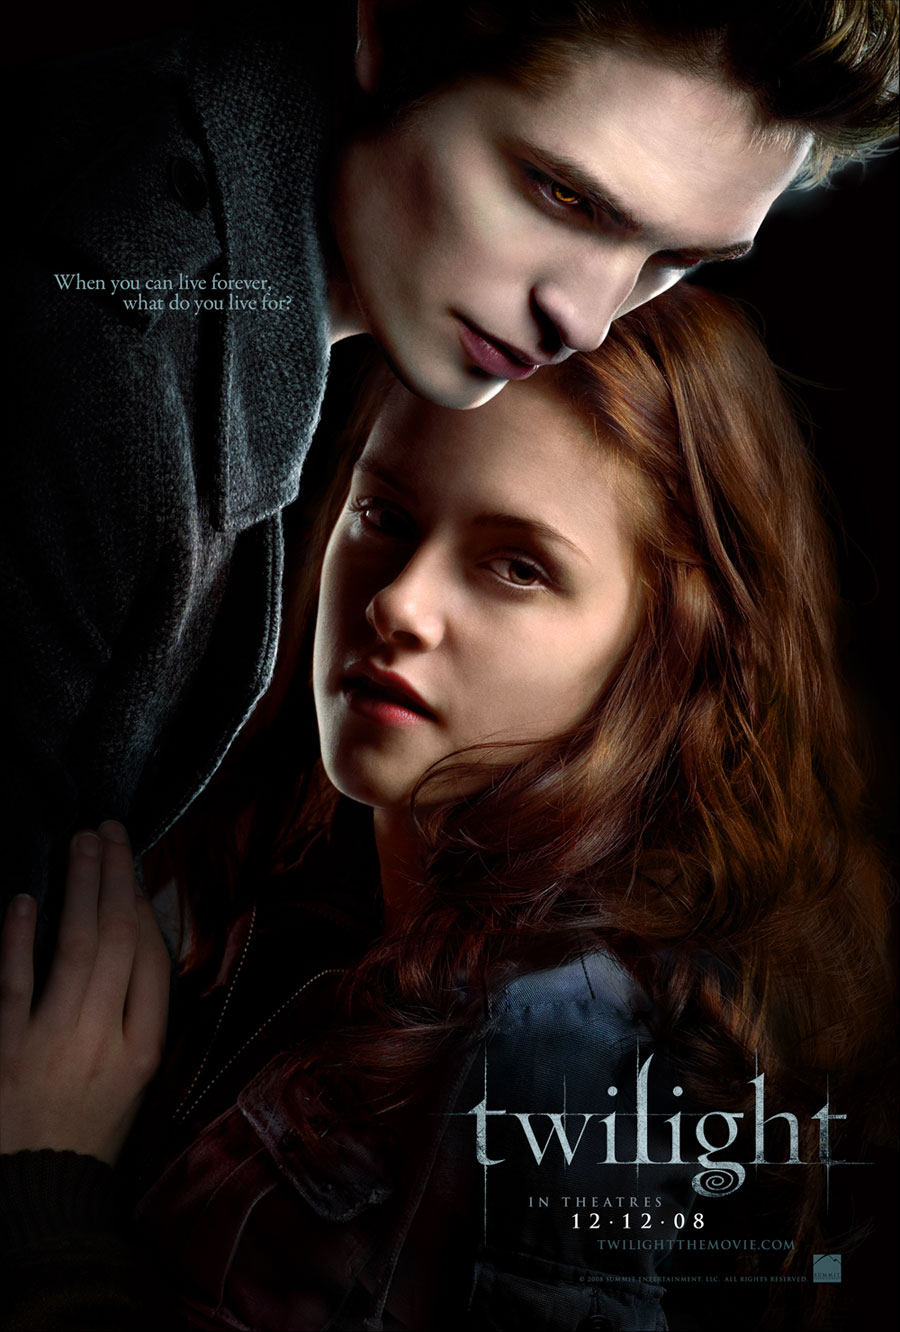 http://geeksofdoom.com/GoD/img/2008/movies/2008-05-10-twilight_poster_lg.jpg